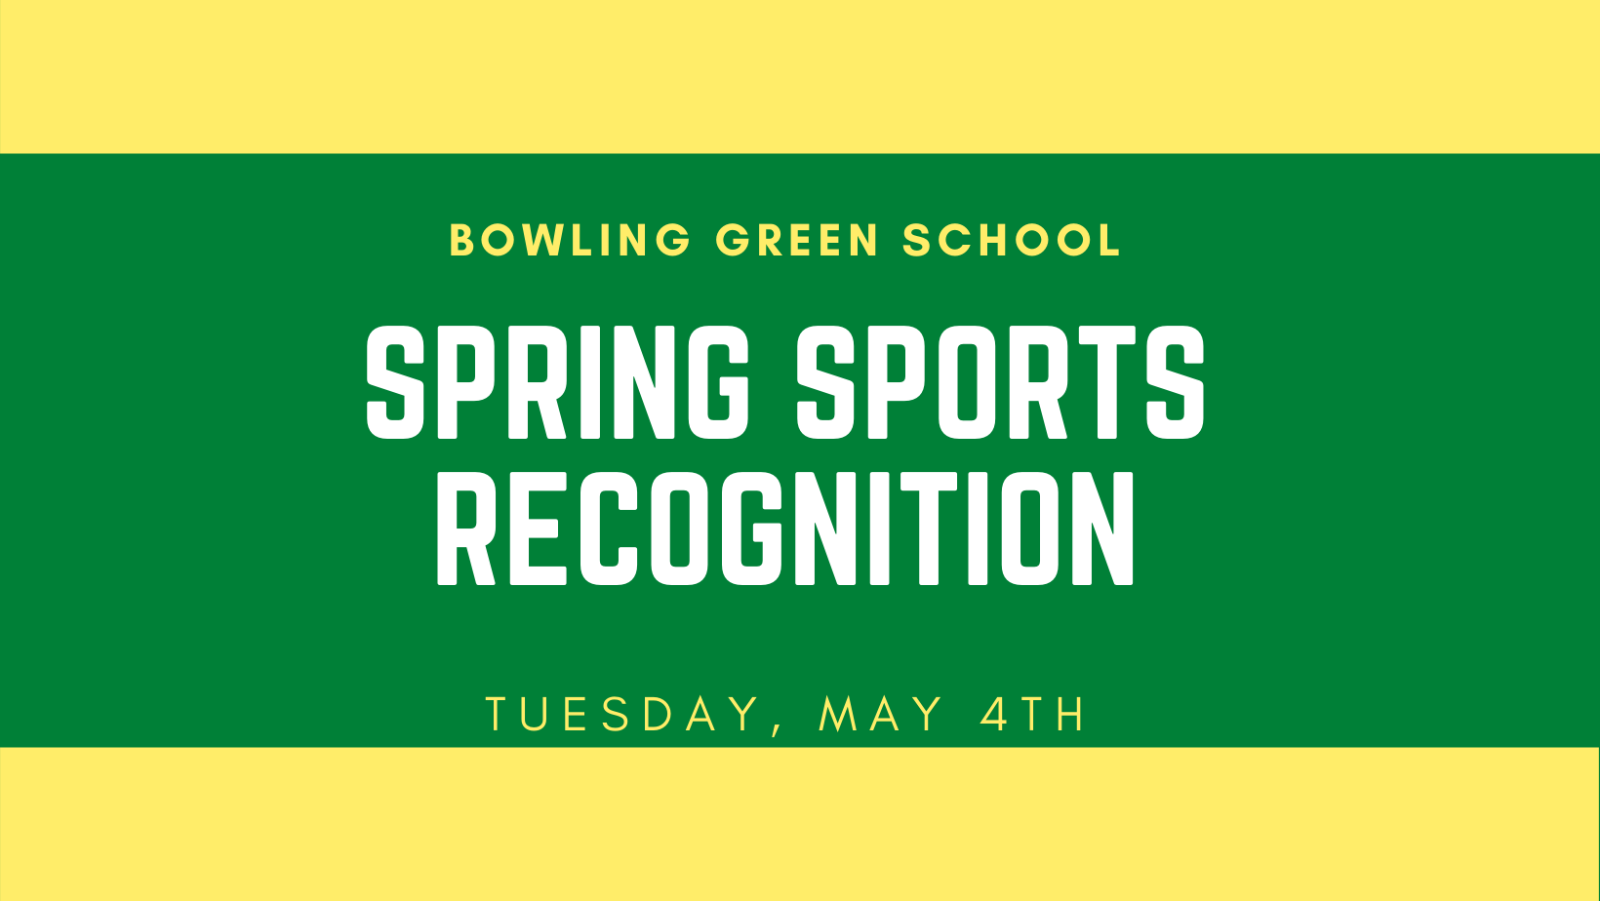 Spring Sports Recognition is Tomorrow